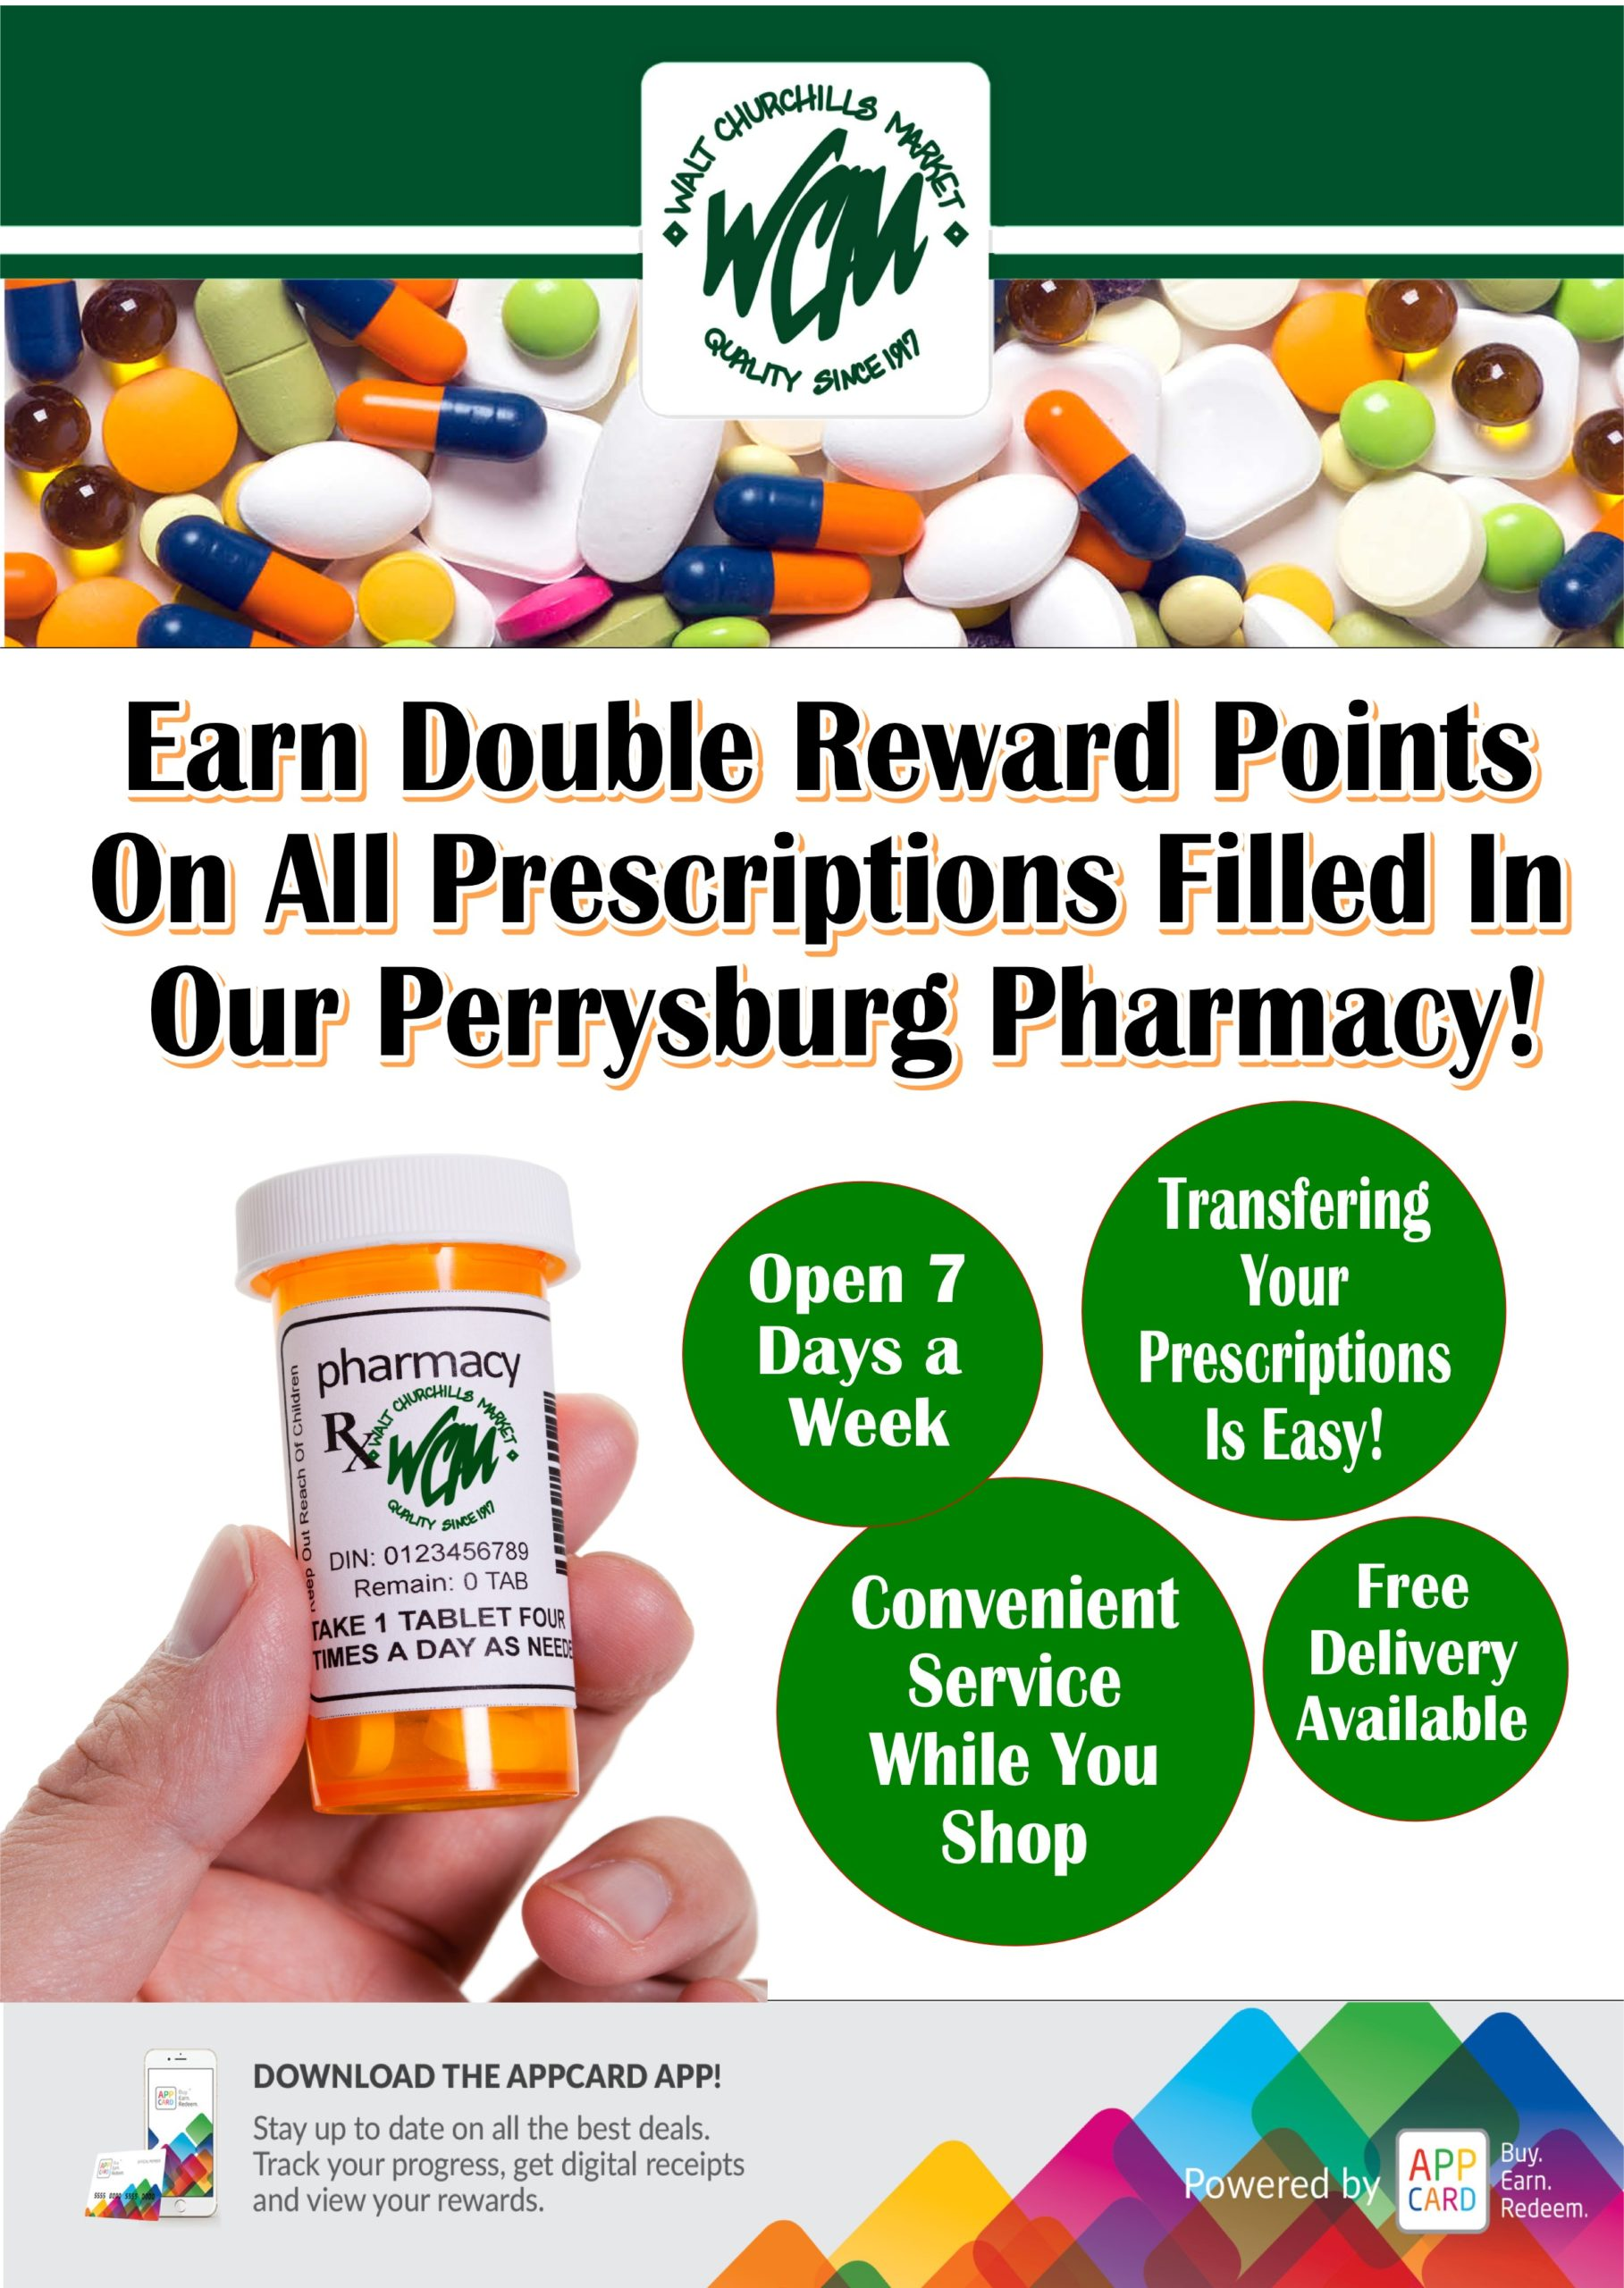 Earn double reward points on all prescriptions filled in our Perrysburg Pharmacy